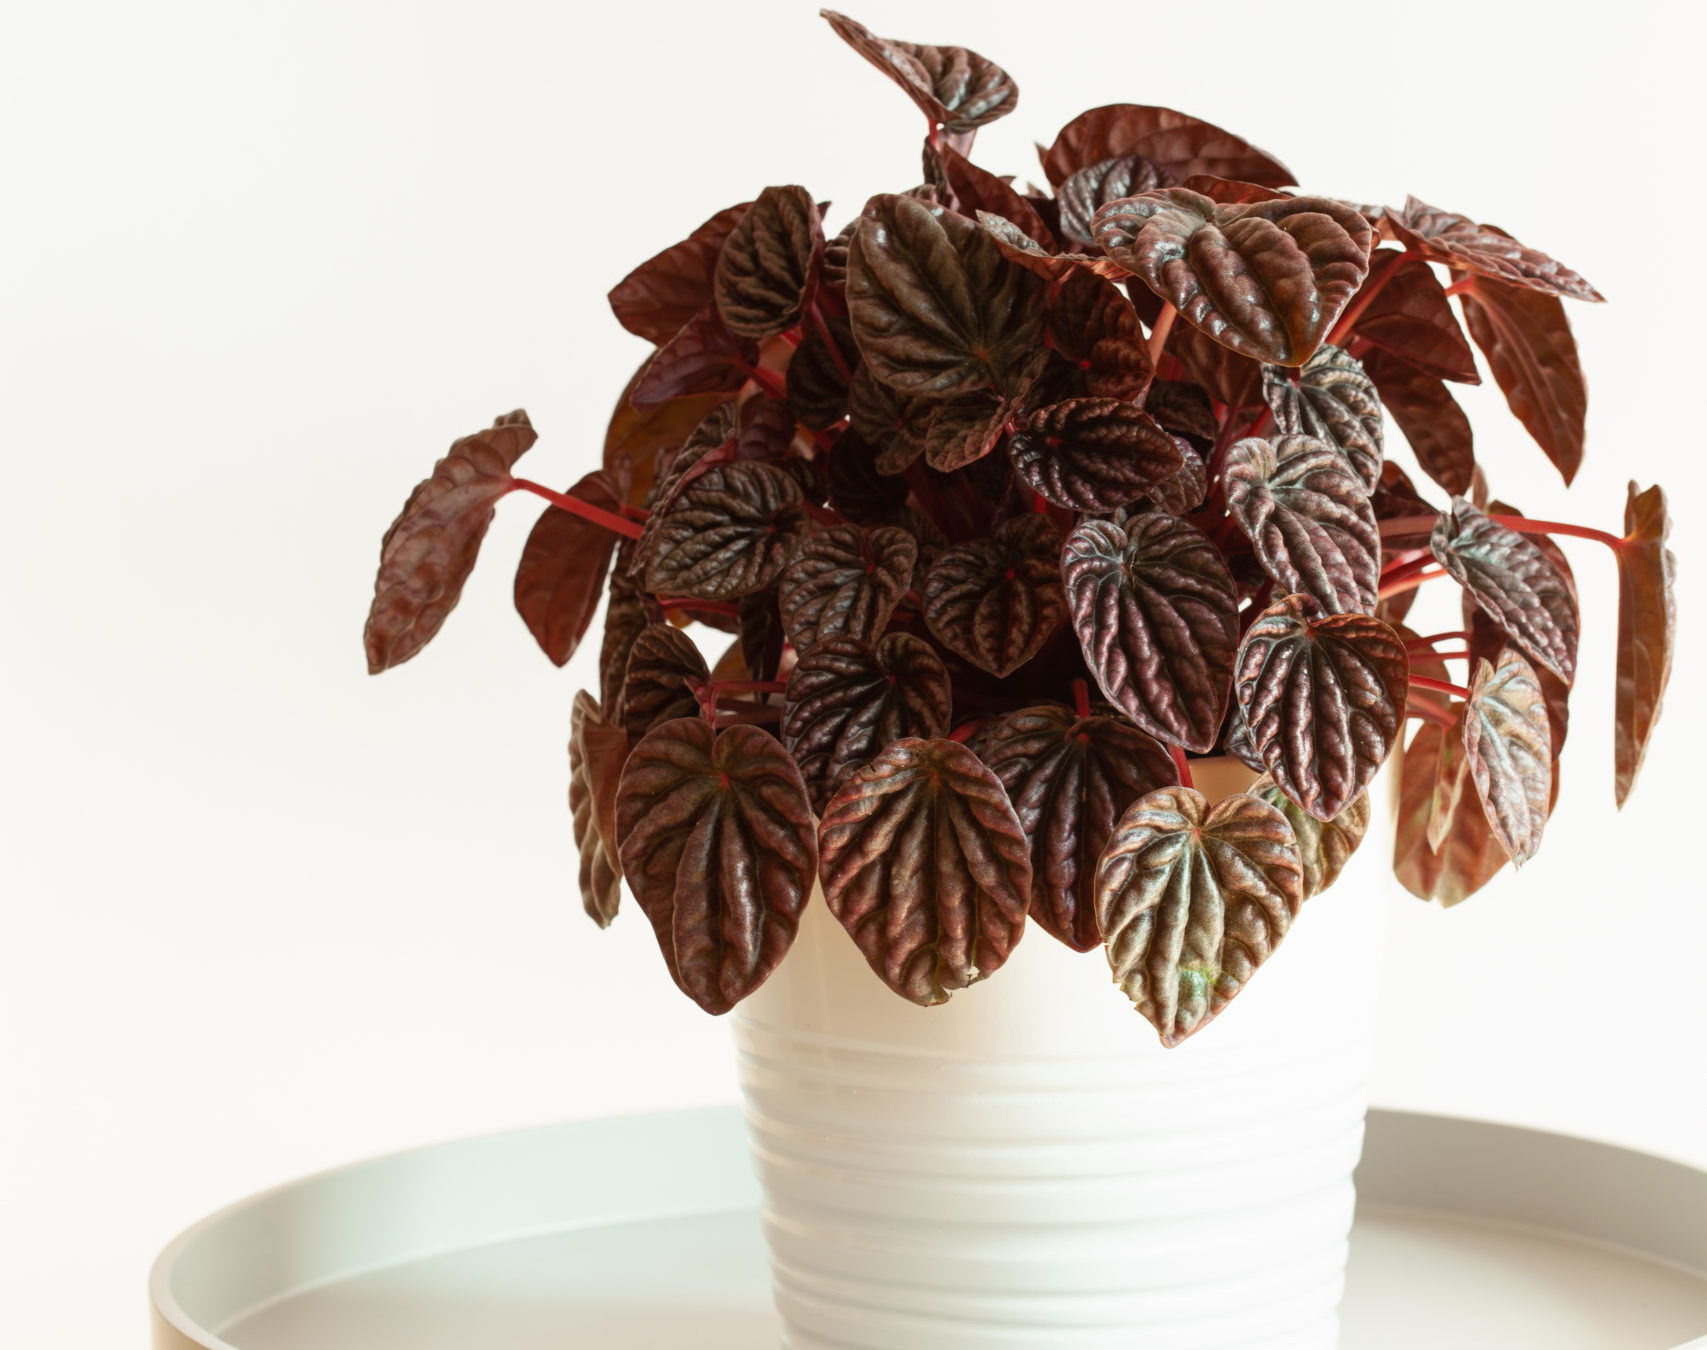 The Ultimate Guide to Peperomia Varieties